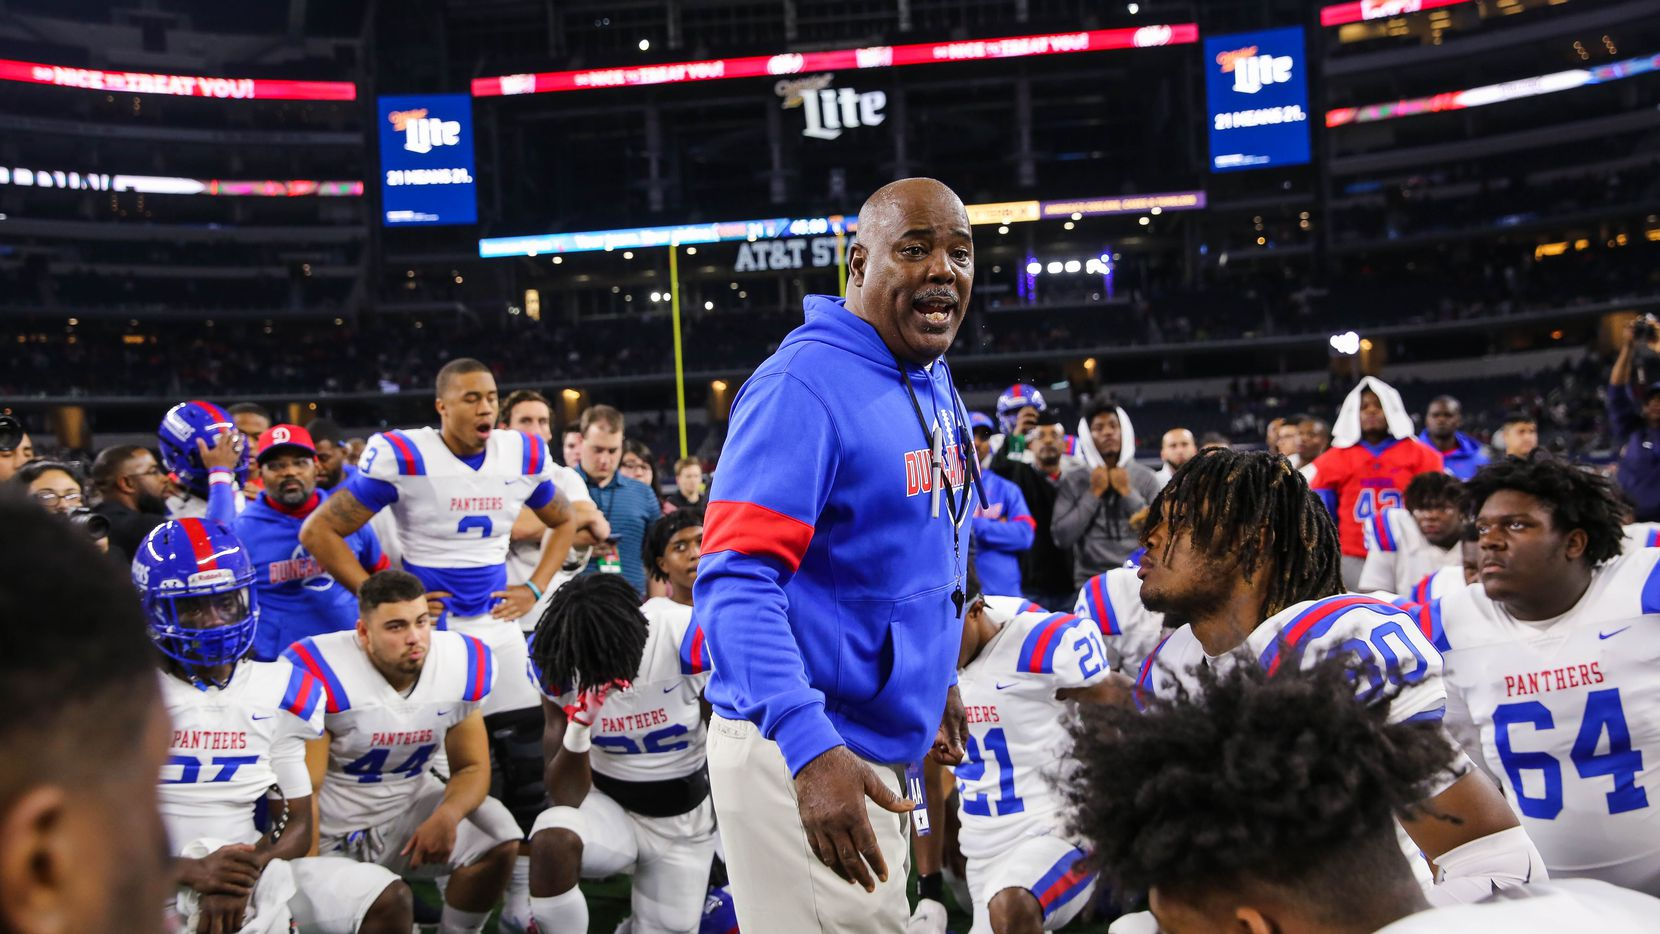 Duncanville's coach Reginald Samples speaks to his team after losing a Class 6A Division I state championship game against North Shore at the AT&T Stadium in Arlington, on Saturday, December 21, 2019. North Shore won 31-17.